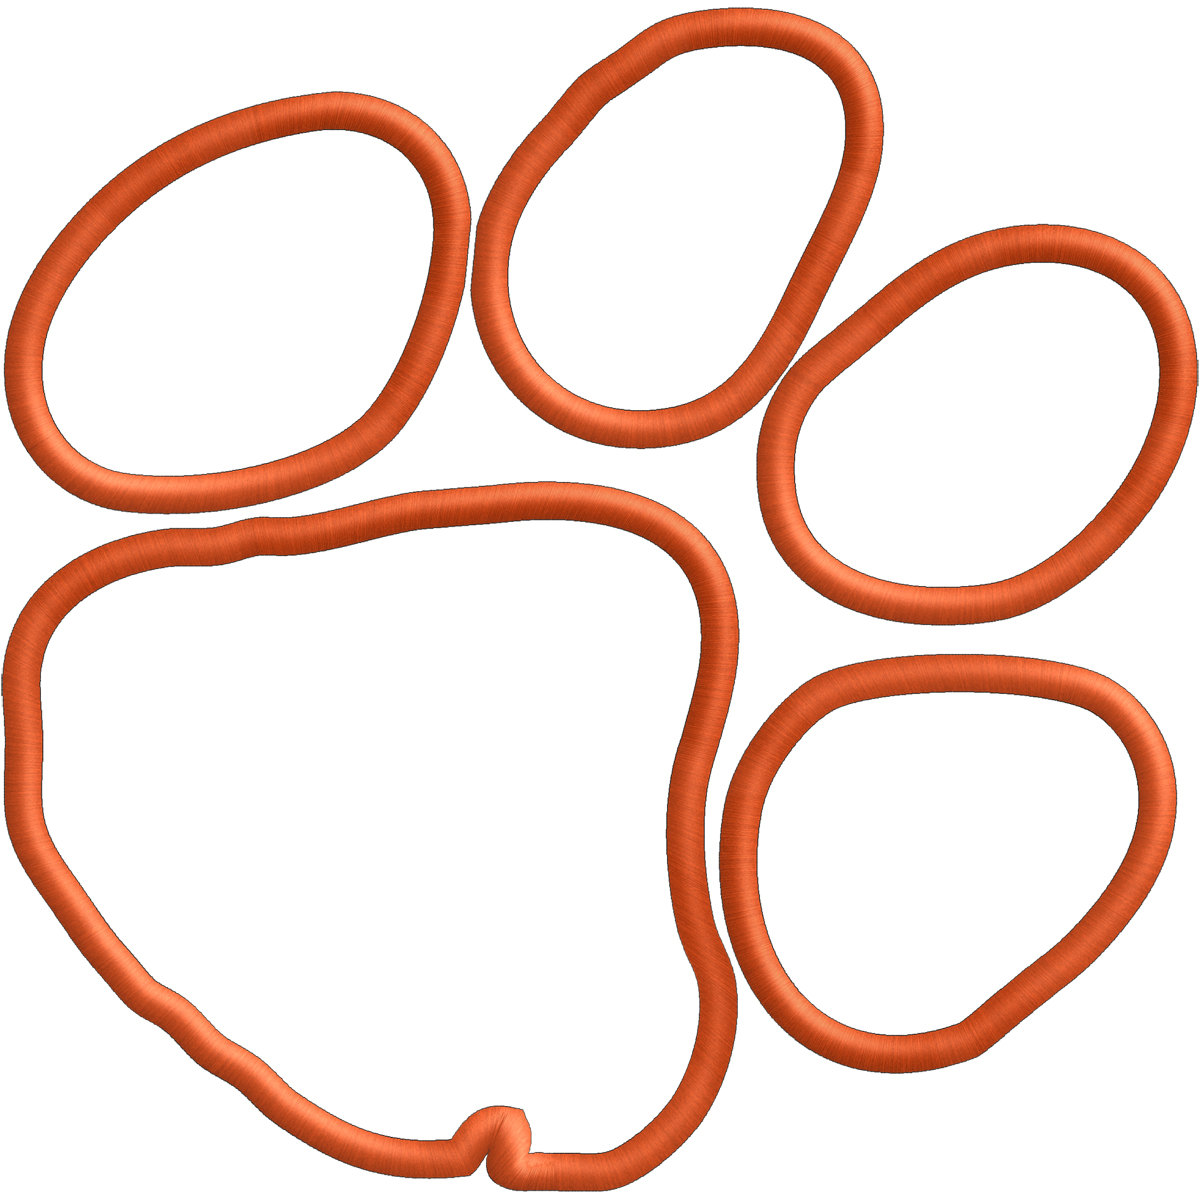 tiger paw template - tiger paw outline